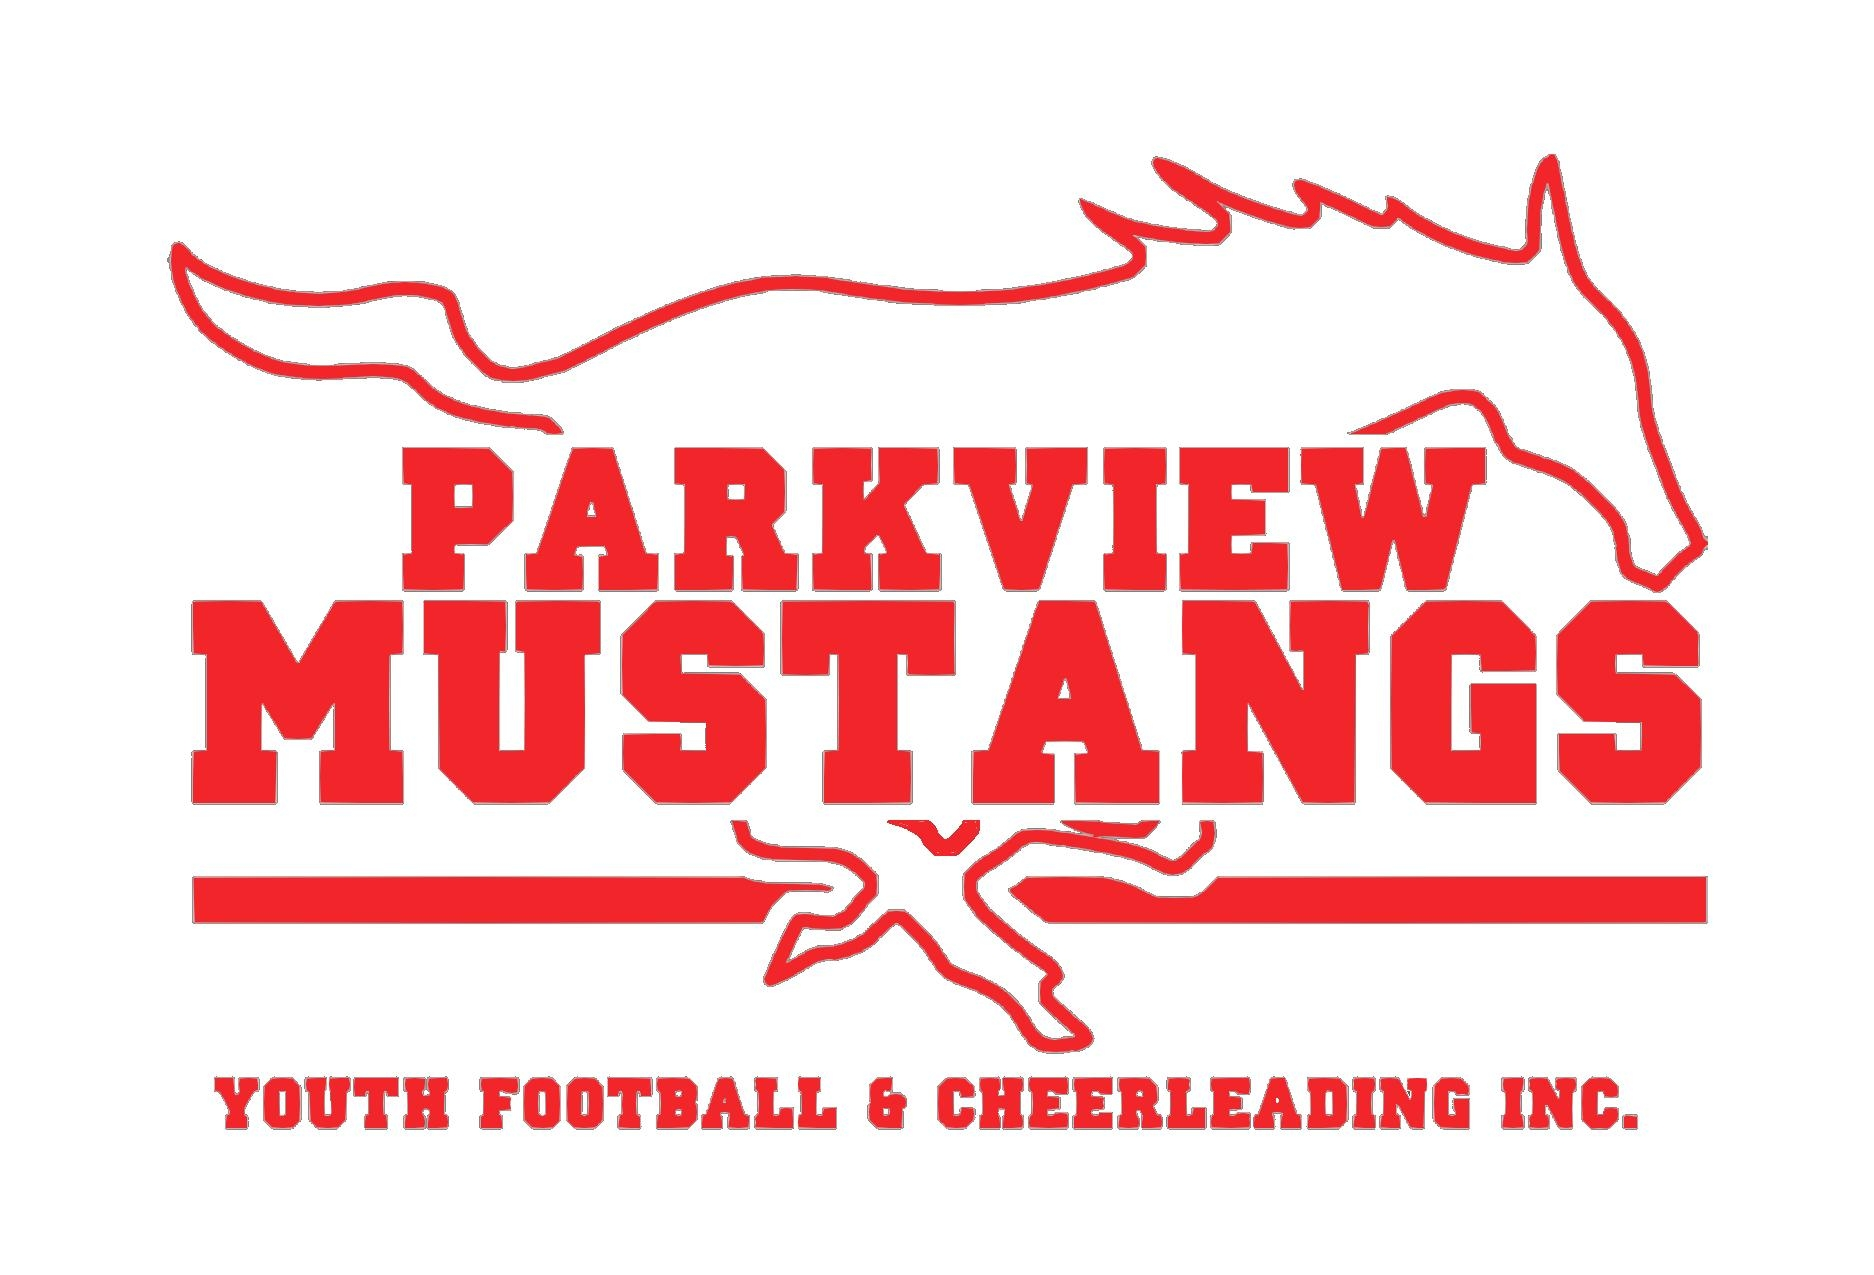 Parkview Mustangs Youth Football & Cheerleading, Inc.